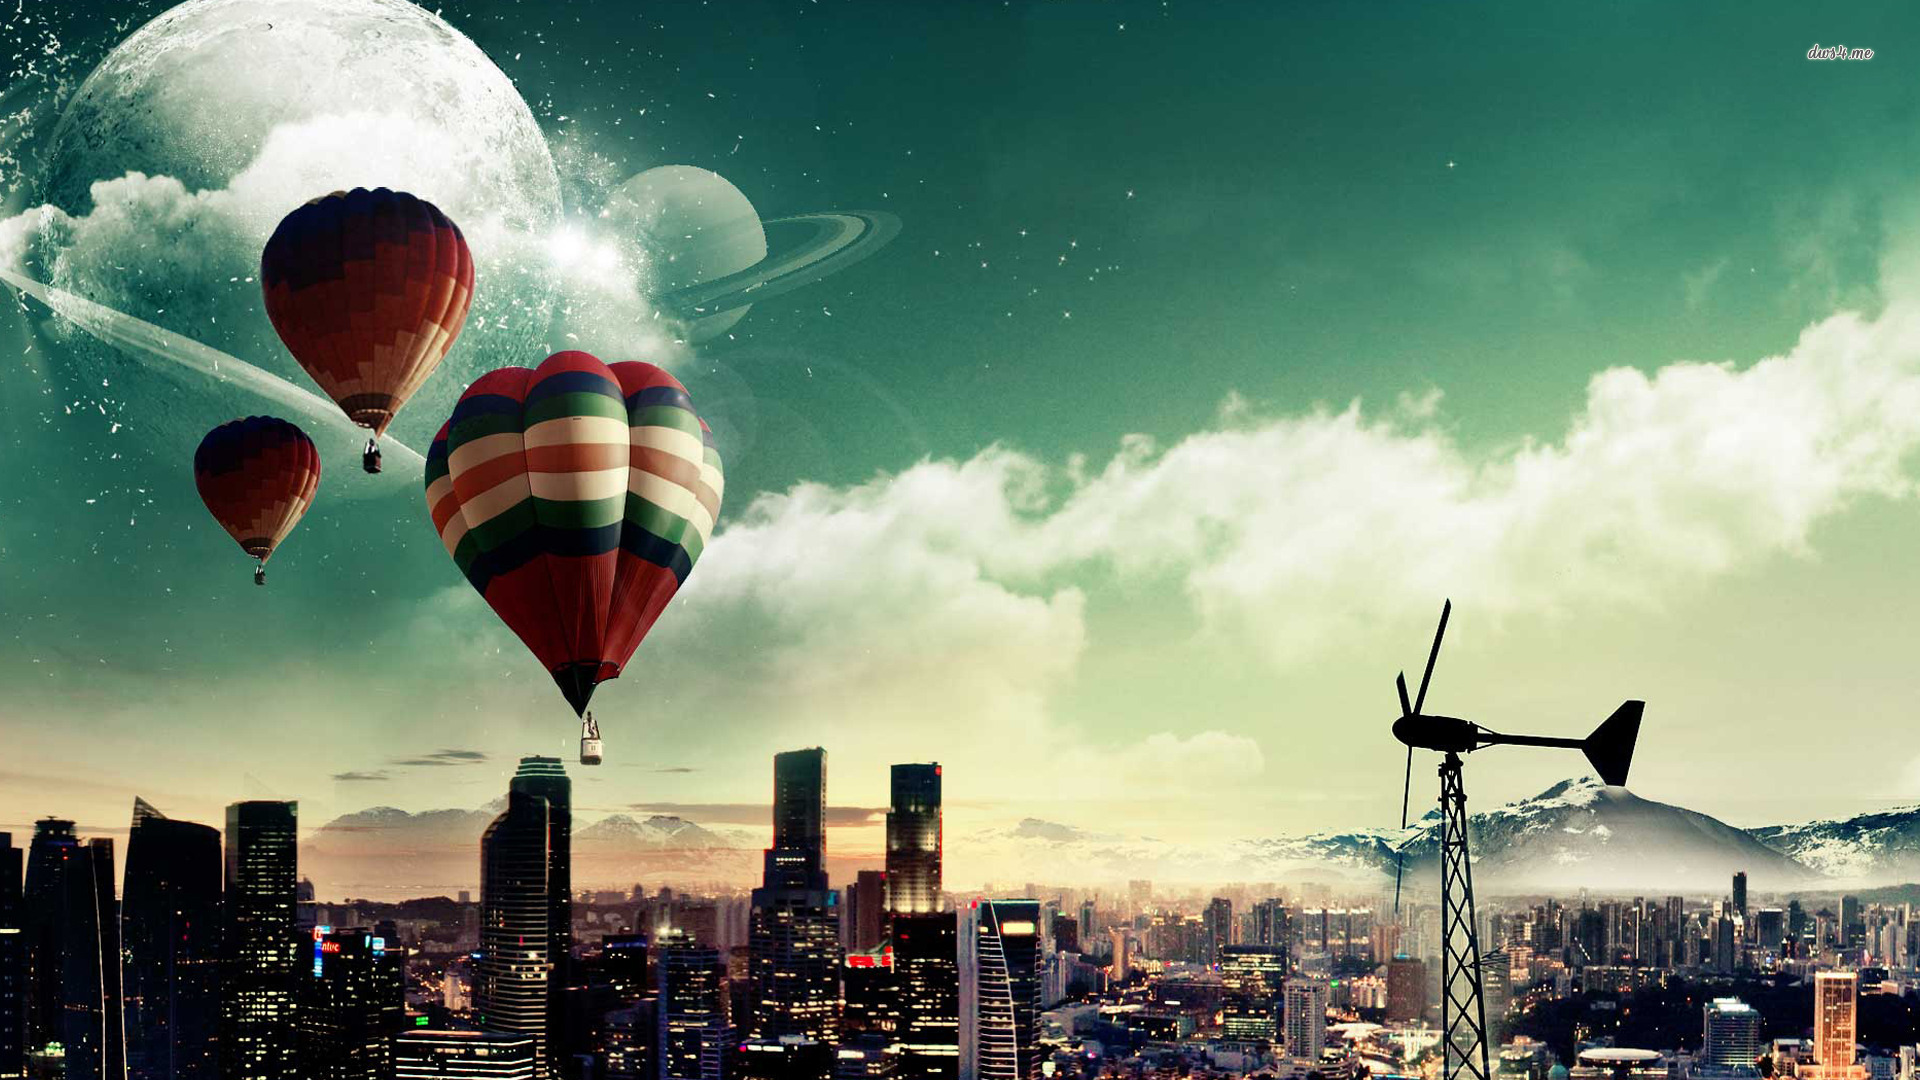 Hot Air Balloon Fantasy Wallpaper